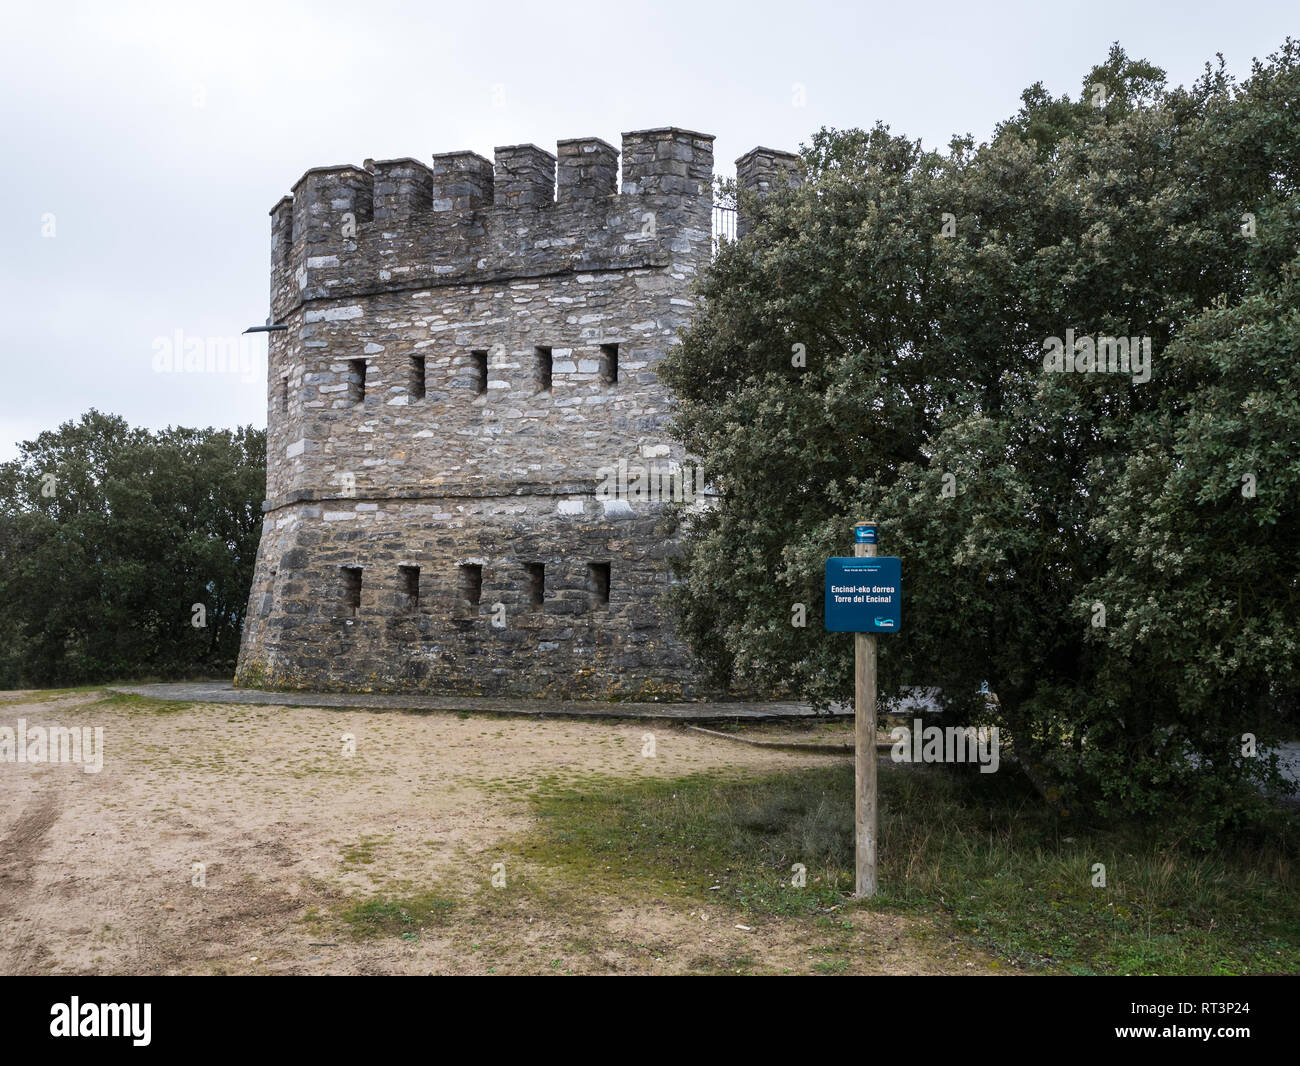 Ruta 25 High Resolution Stock Photography And Images Alamy